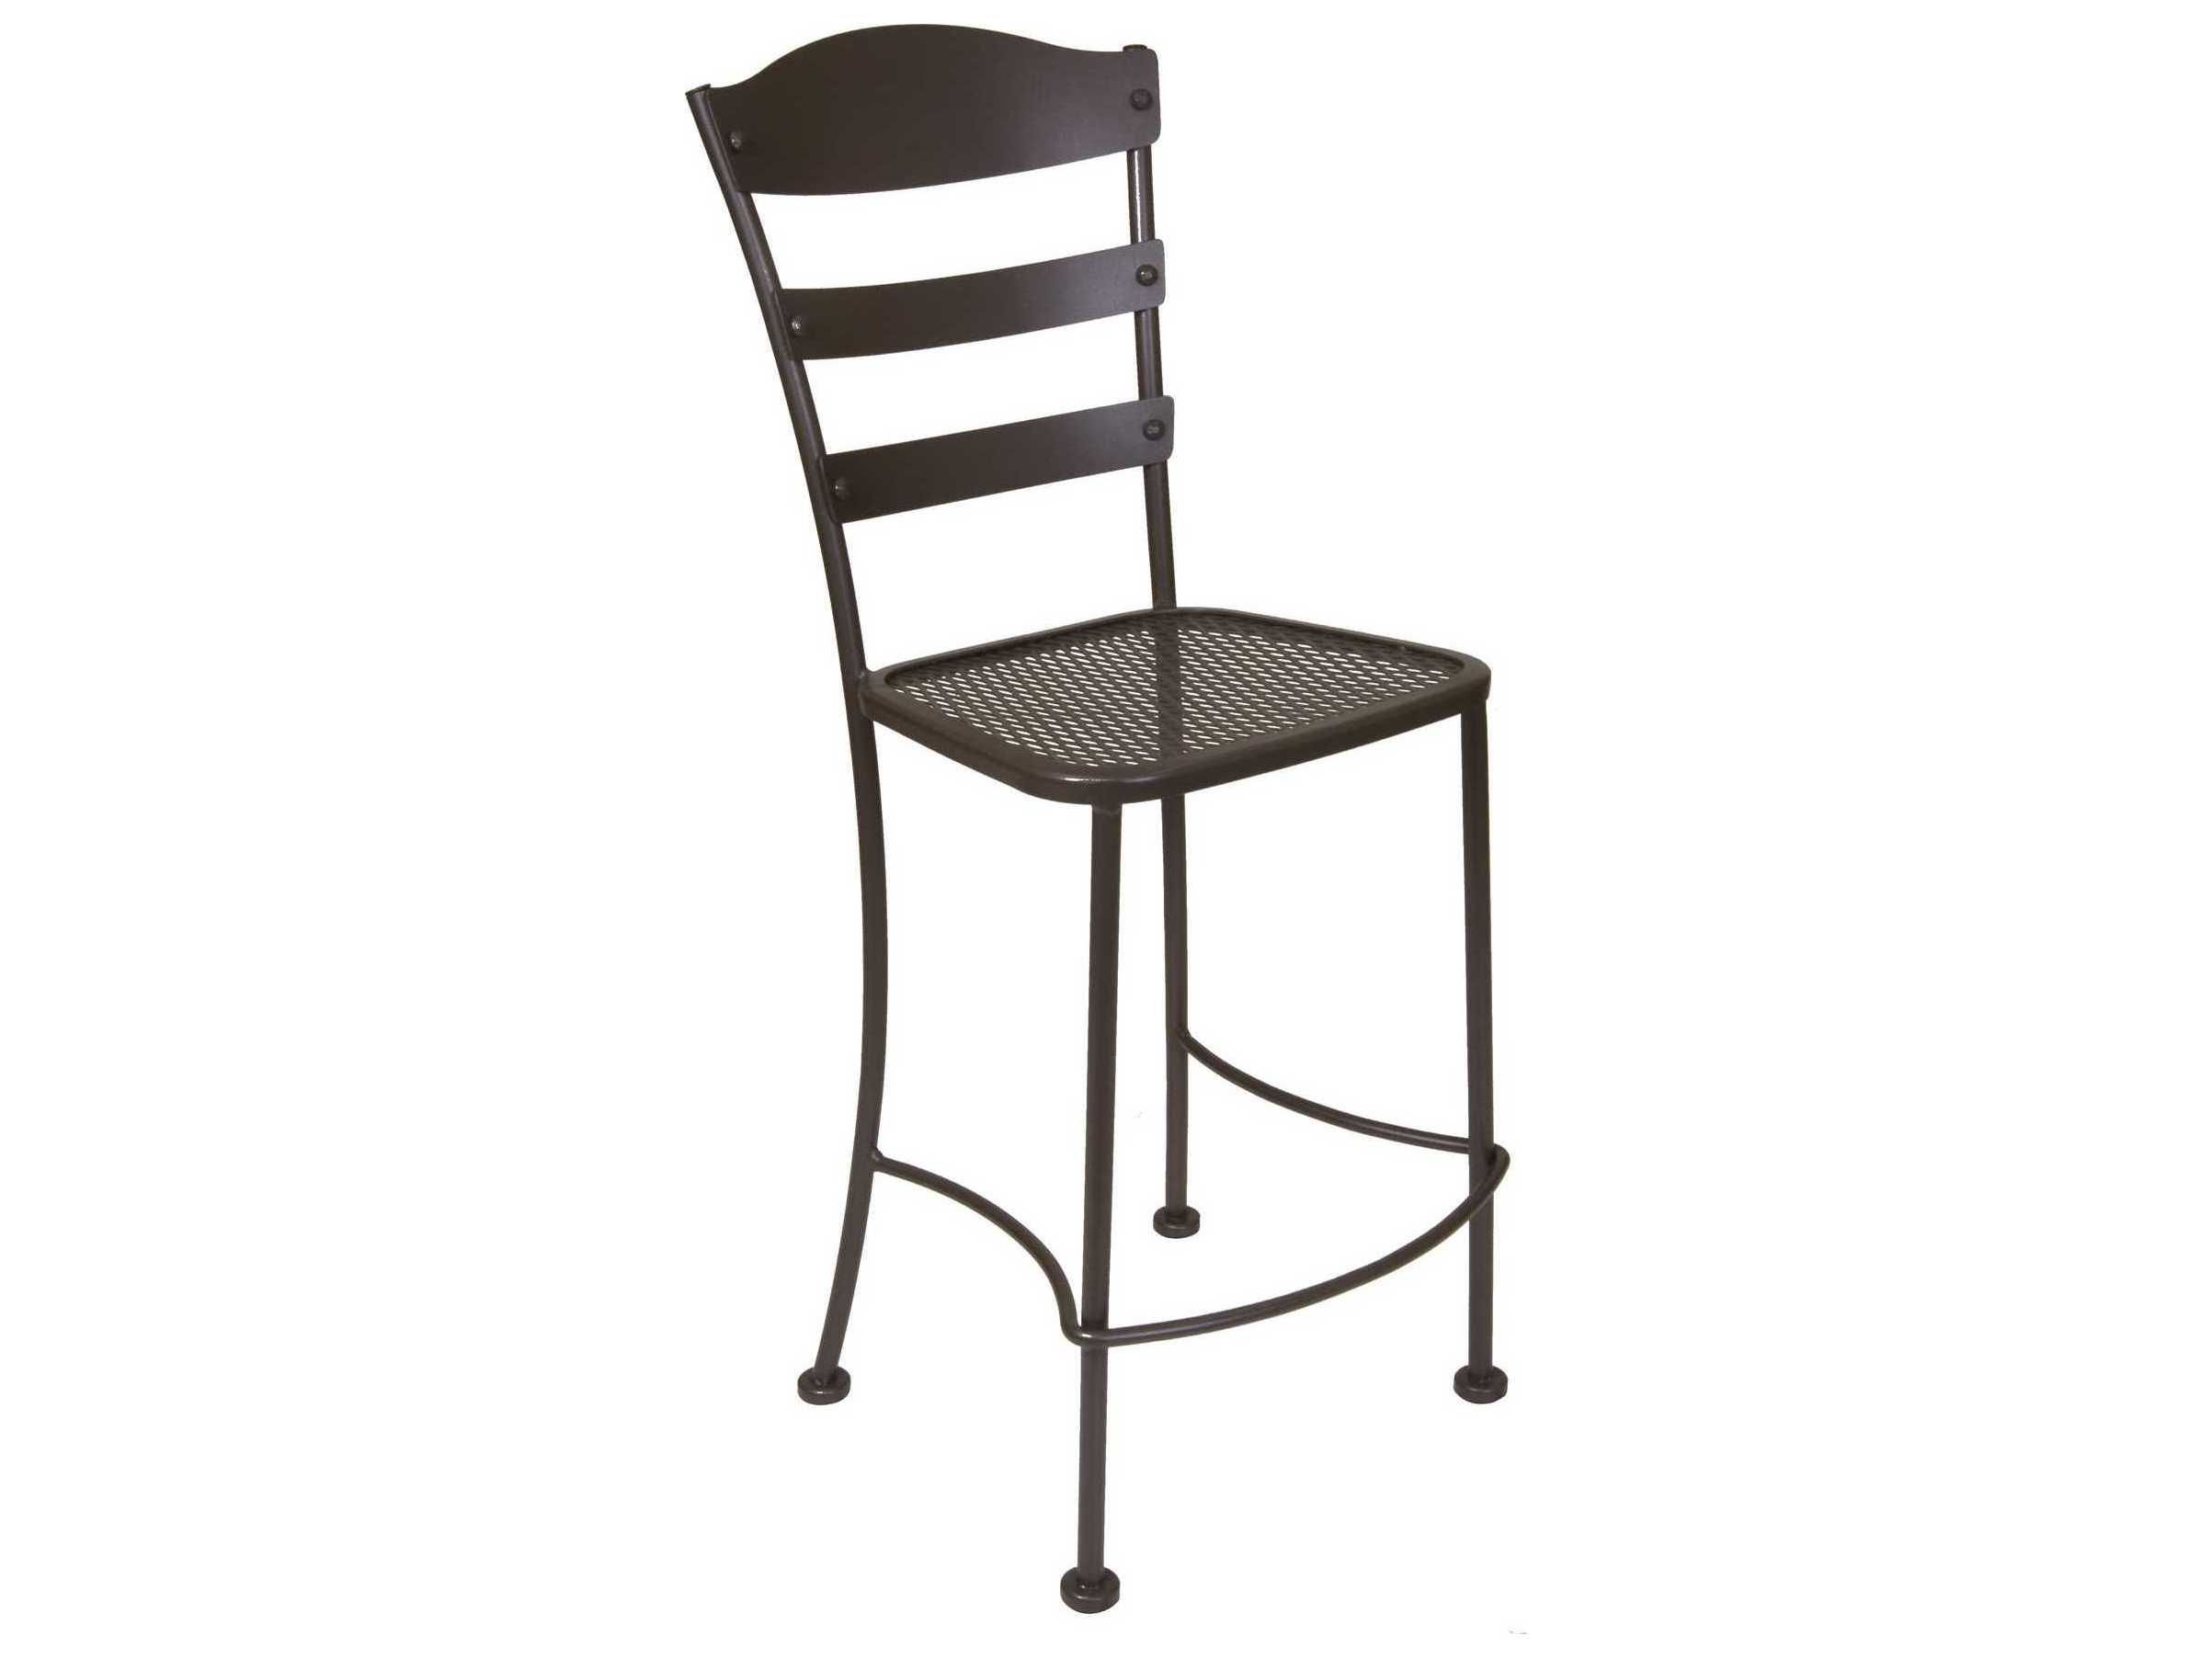 Ow Lee Chalet Counter Stool Replacement Cushions 616 Csch